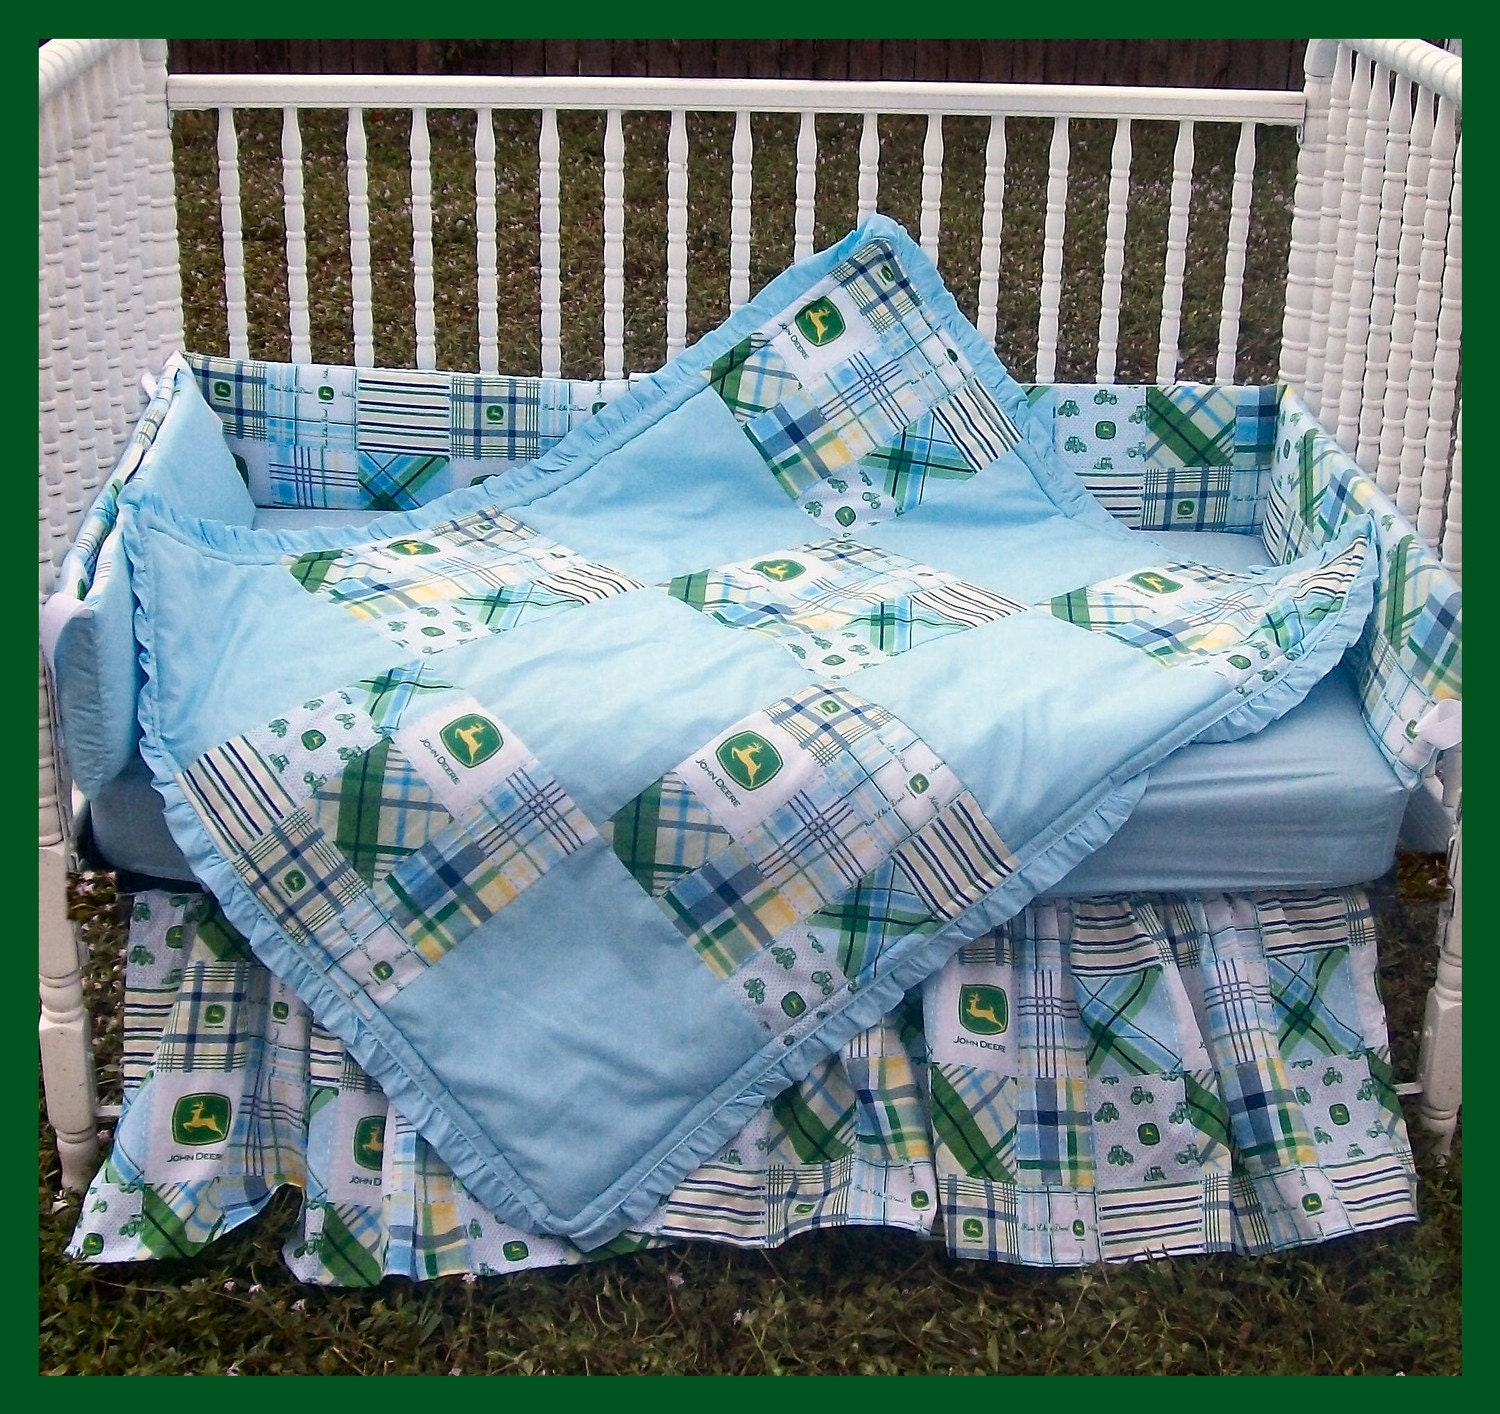 John Deere Bedding Sets For Boys In A Bag : Unavailable listing on etsy